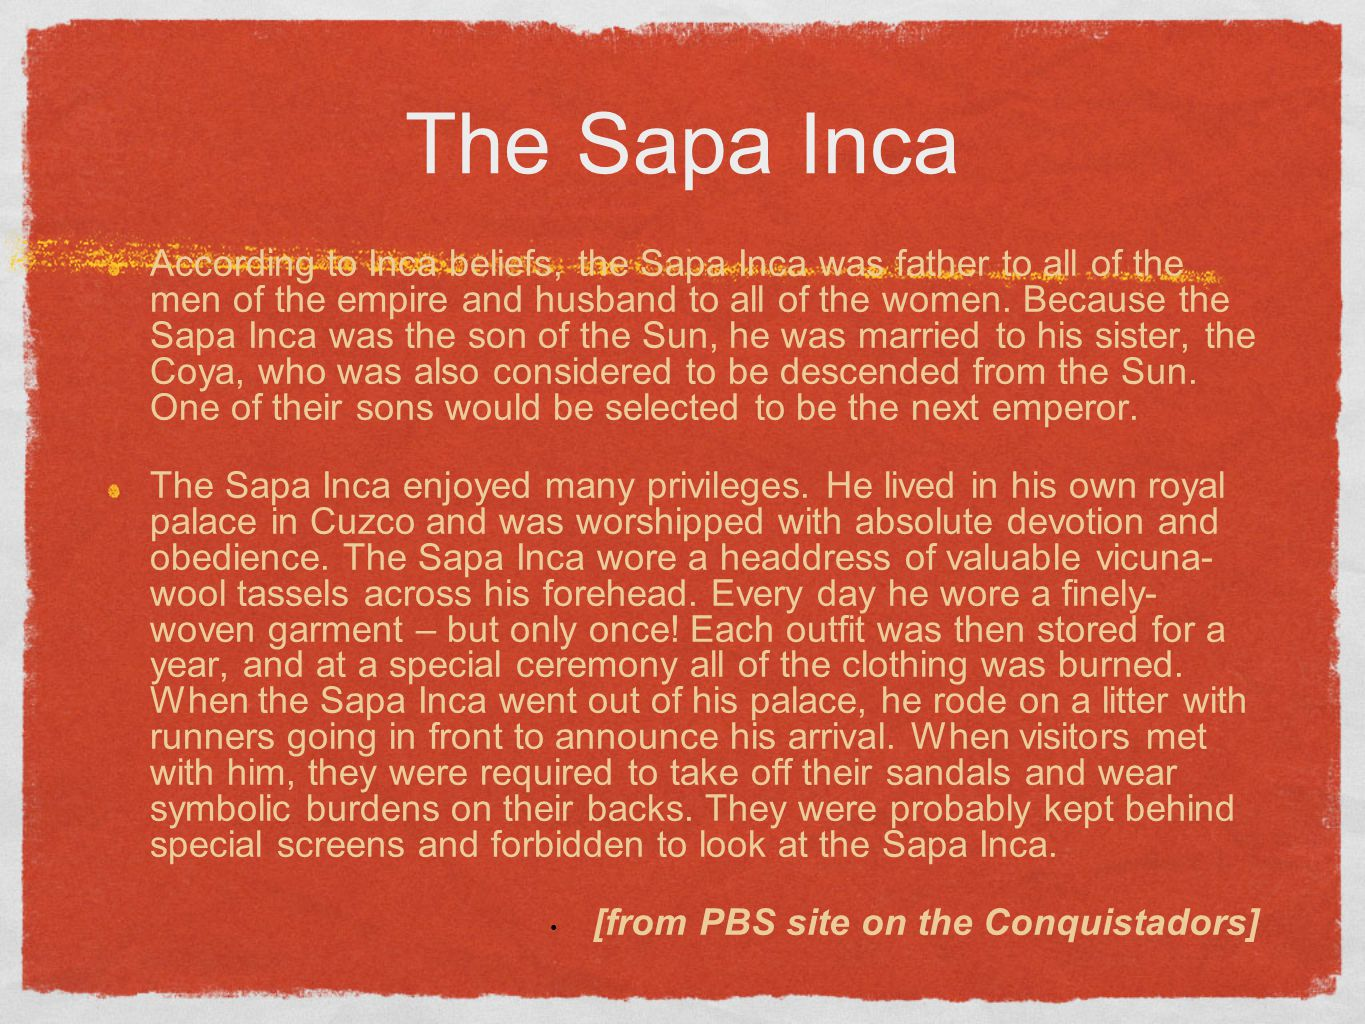 The Sapa Inca